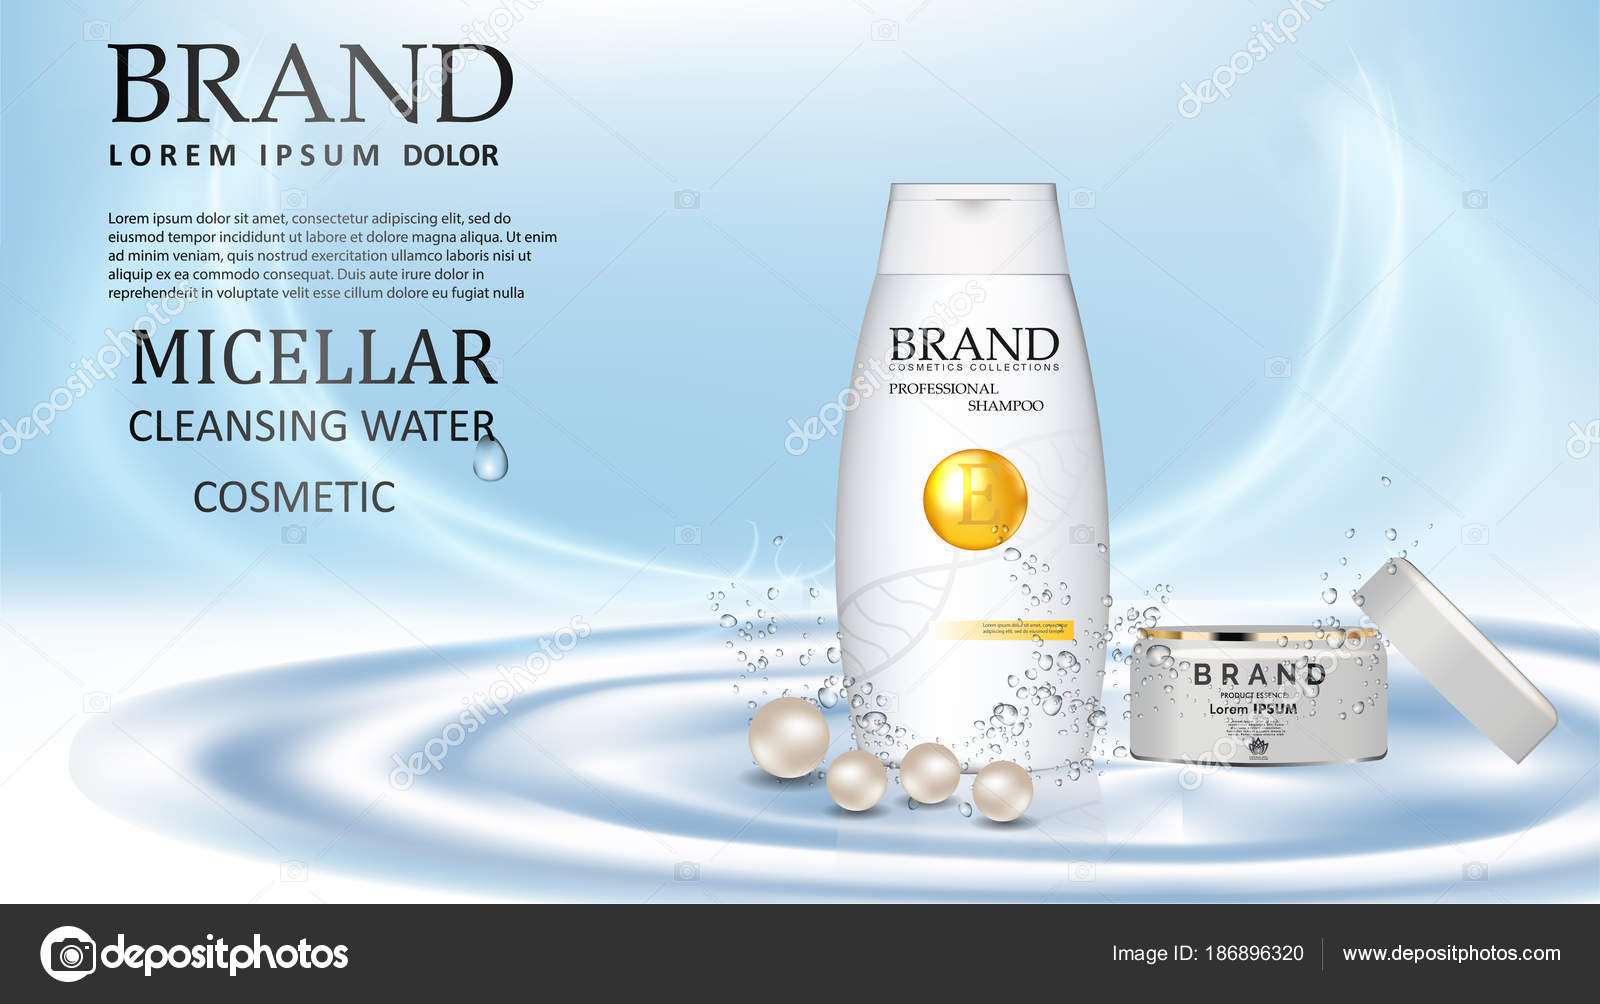 Plastic bottle with hair shampoo  Product with label design Vector